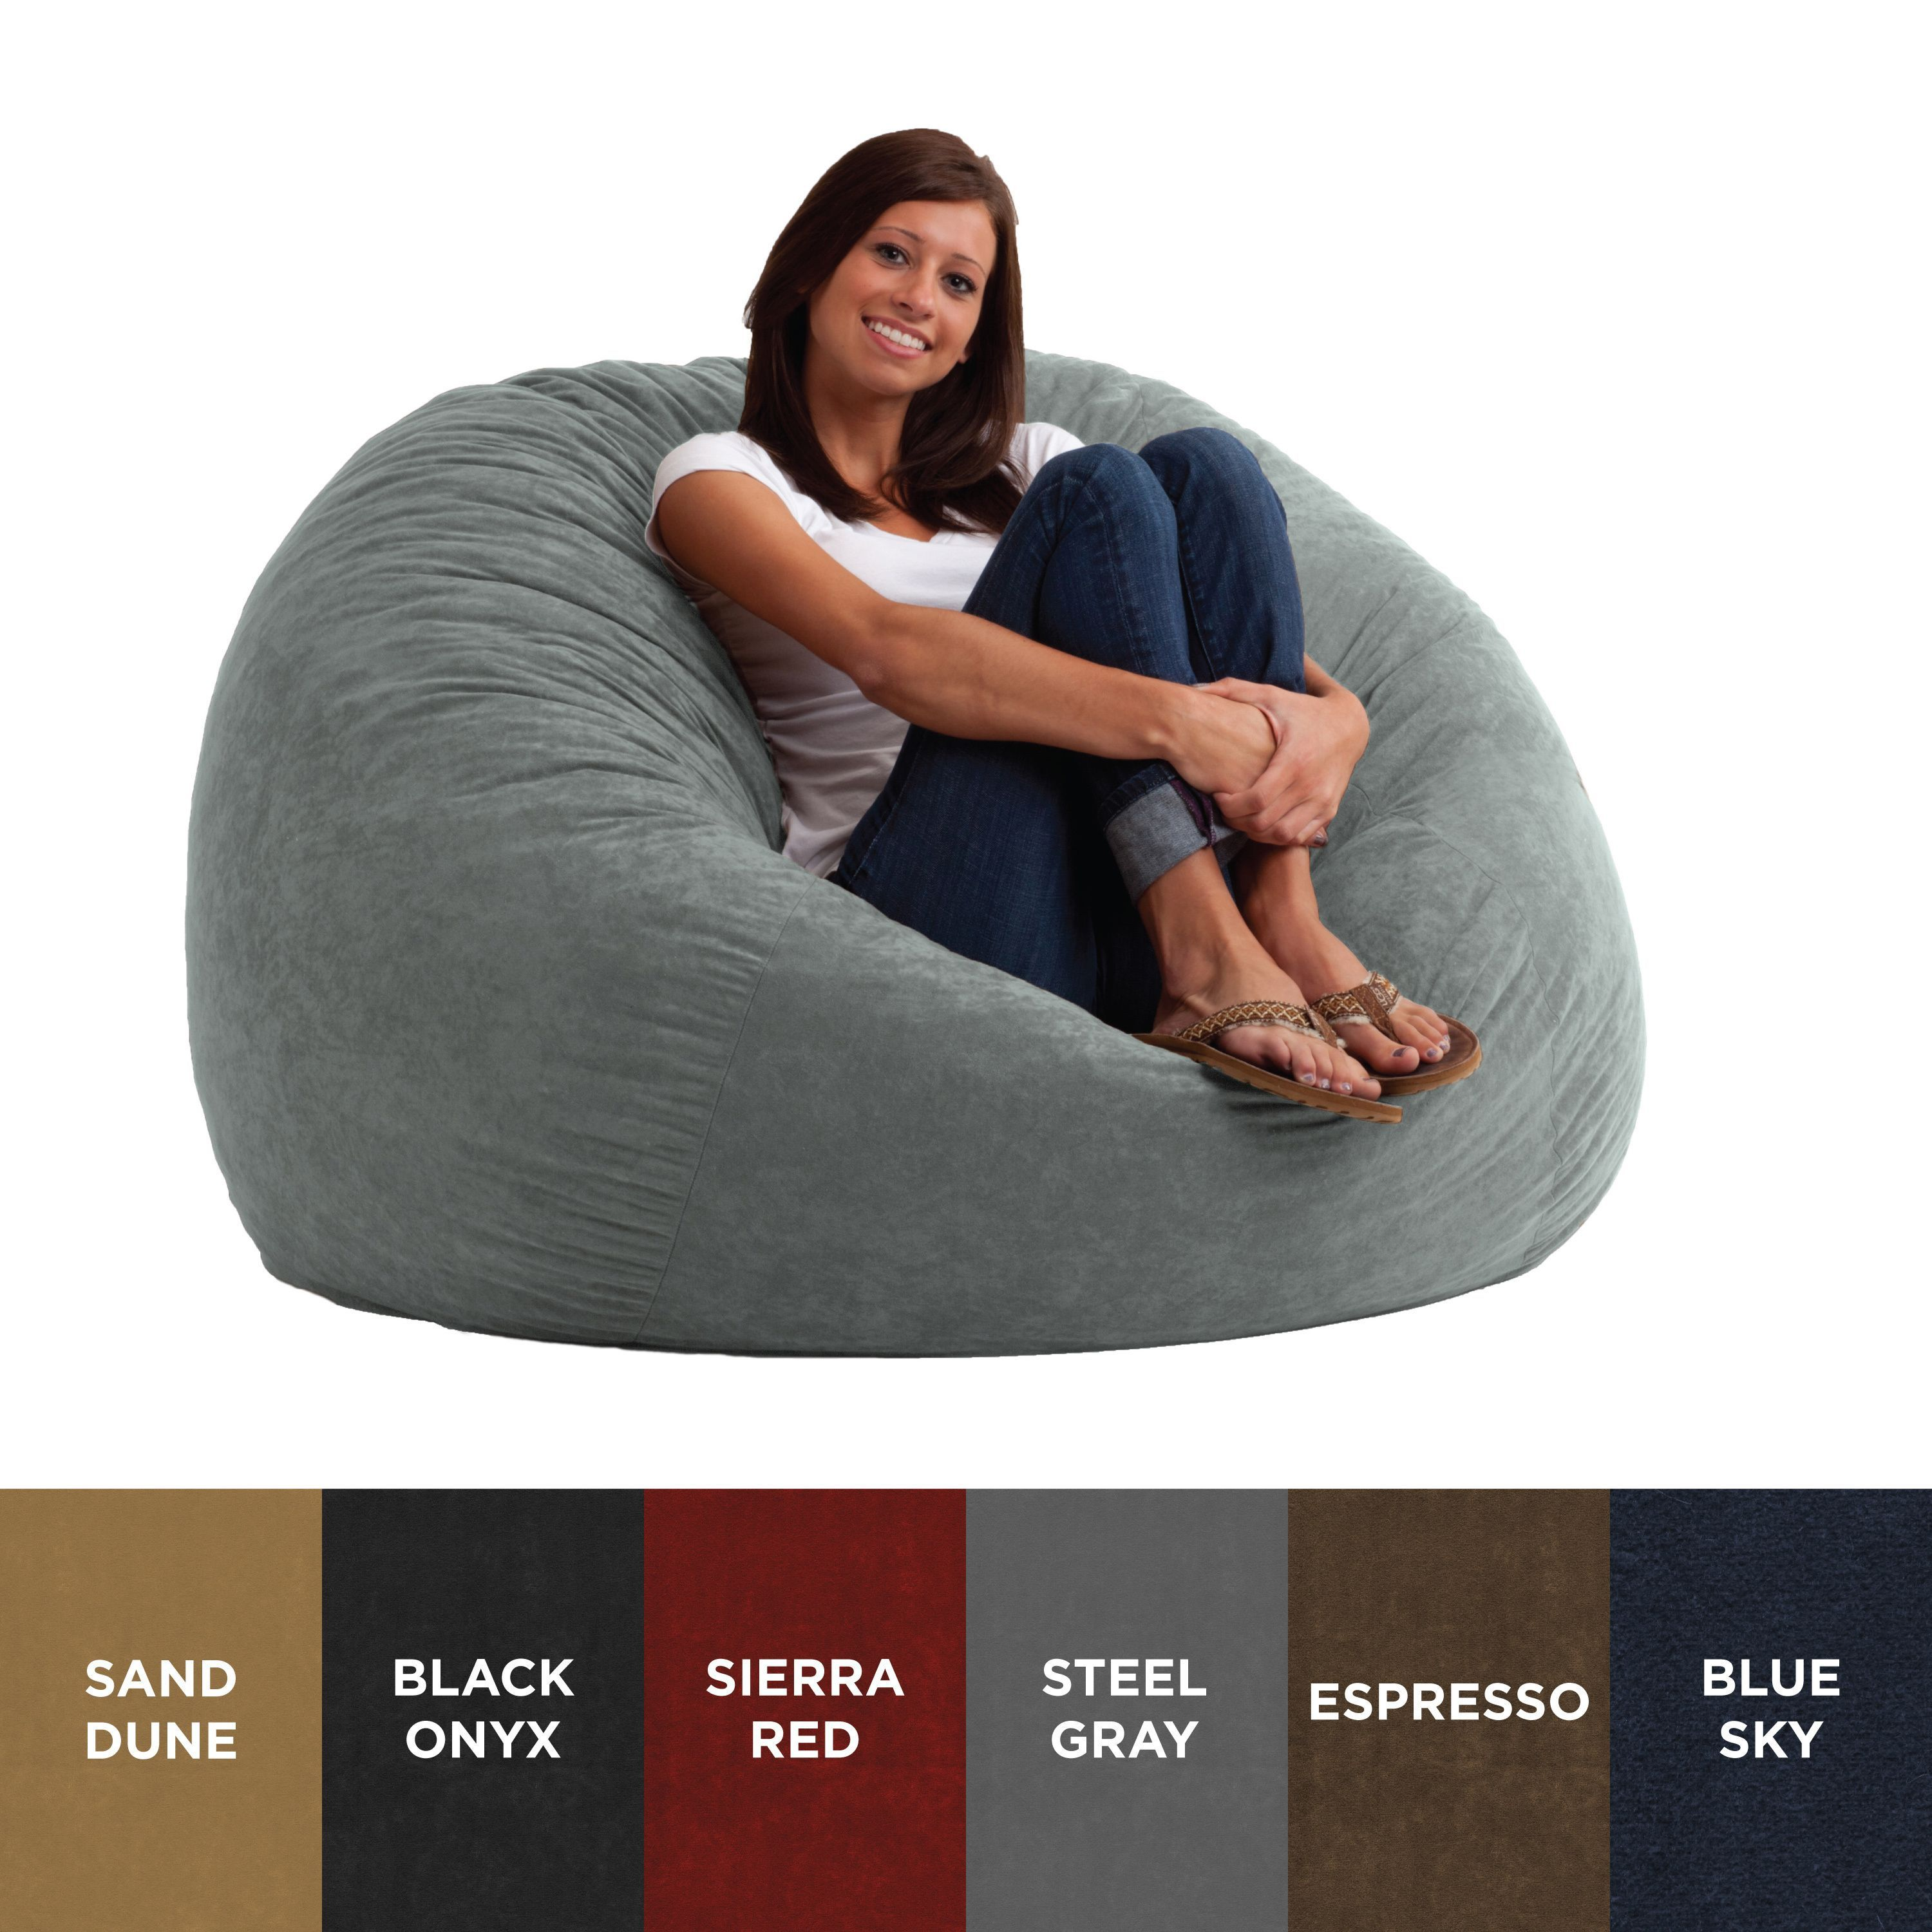 Spend Hours Relaxing In This Comfortable And Durable Lounger Chair With  Memory Foam Support. With. Beanbag ...